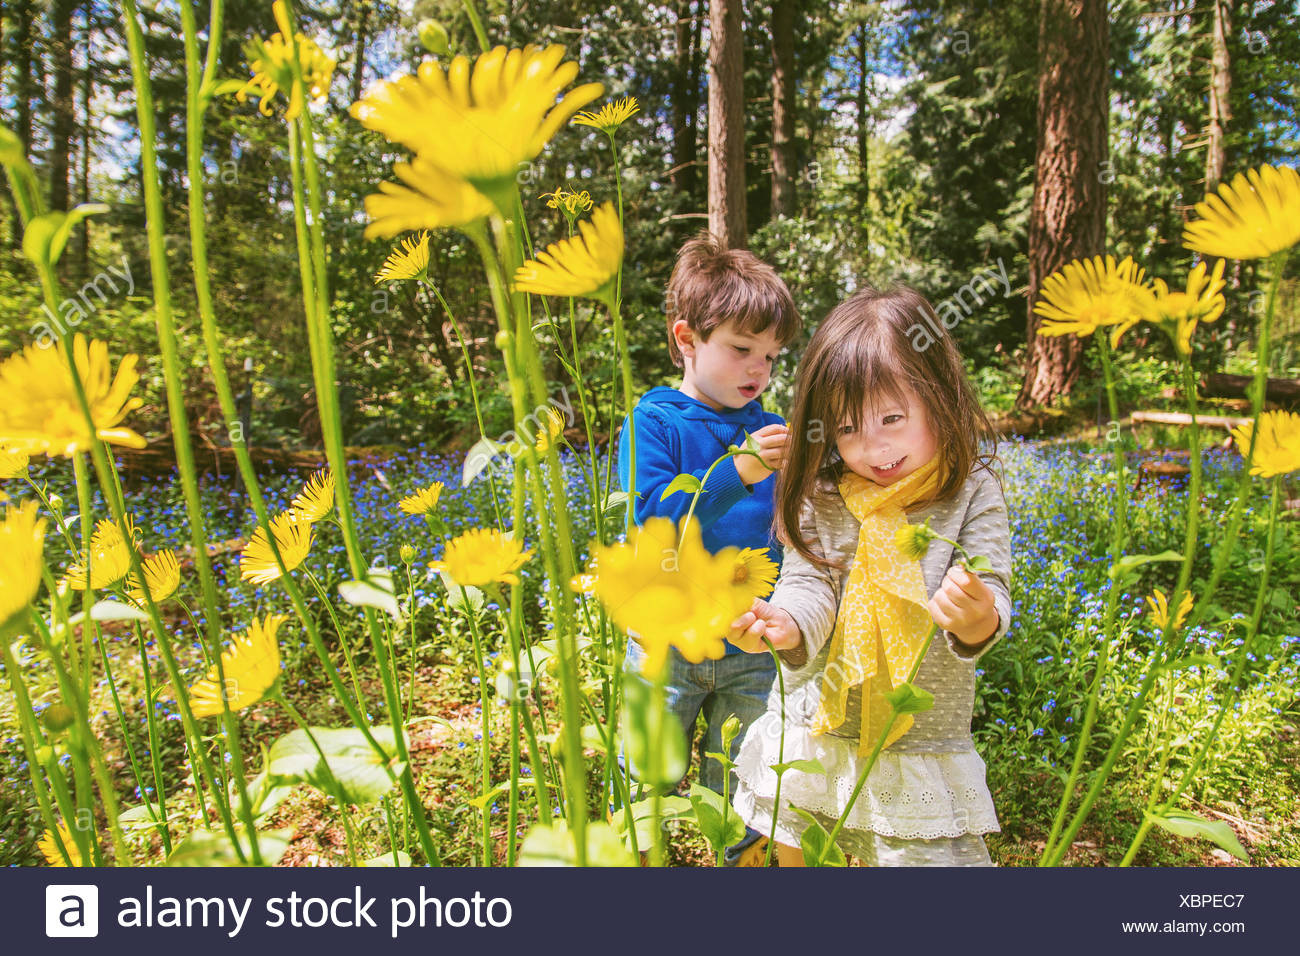 Boy and girl picking yellow flowers in countryside - Stock Image